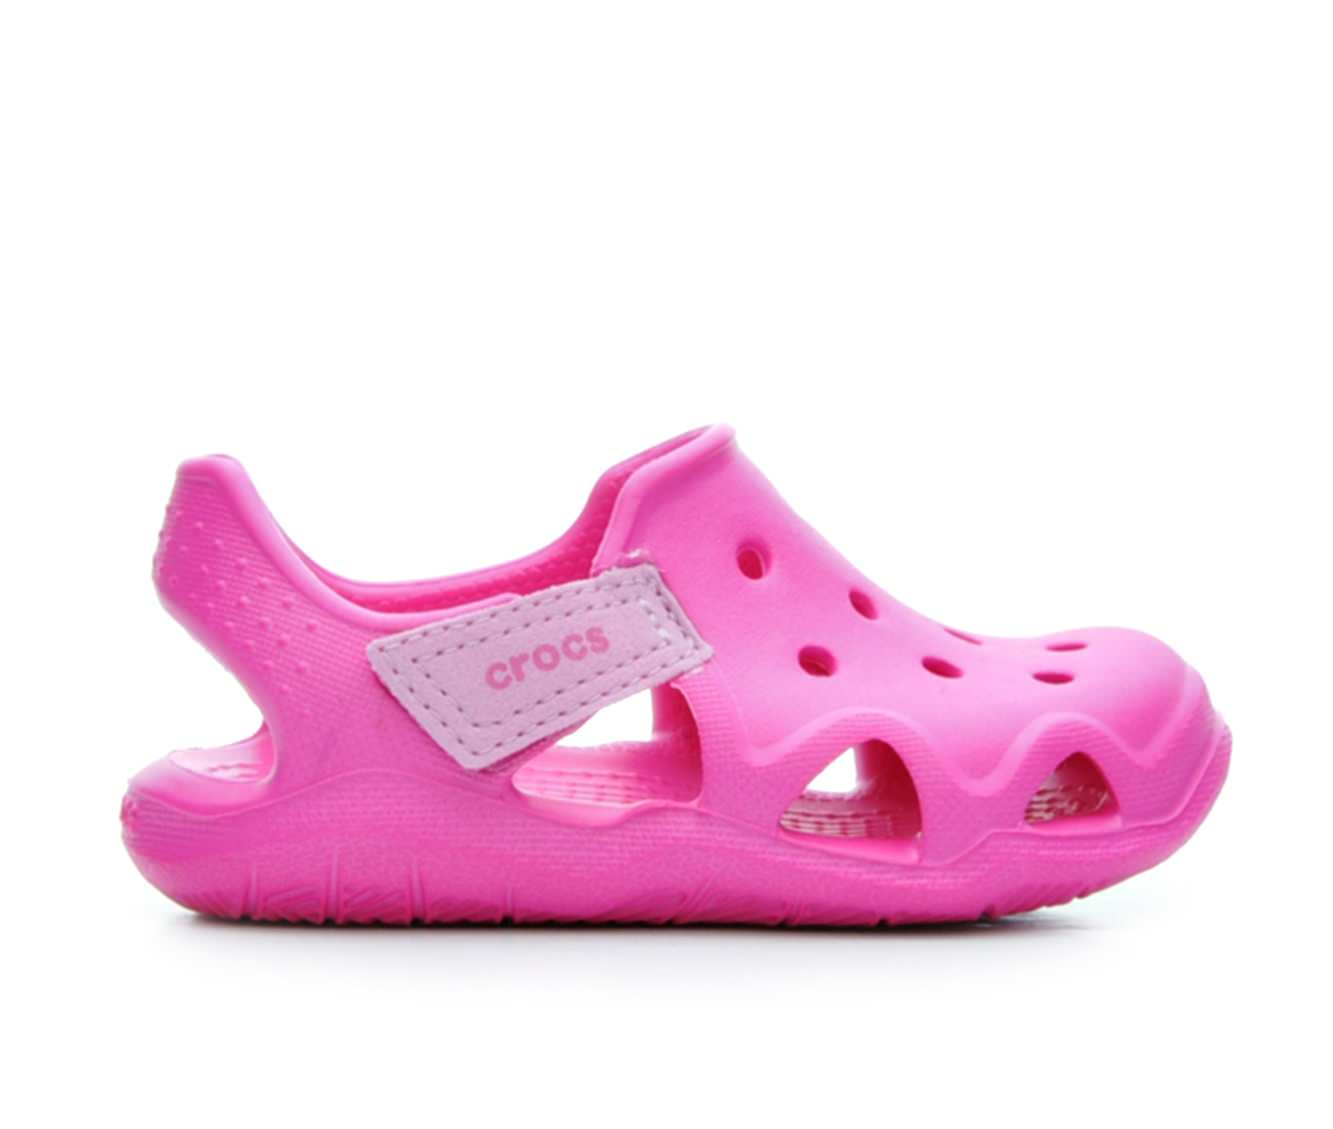 Girls' Crocs Swiftwater Wave G Sandals (Pink)